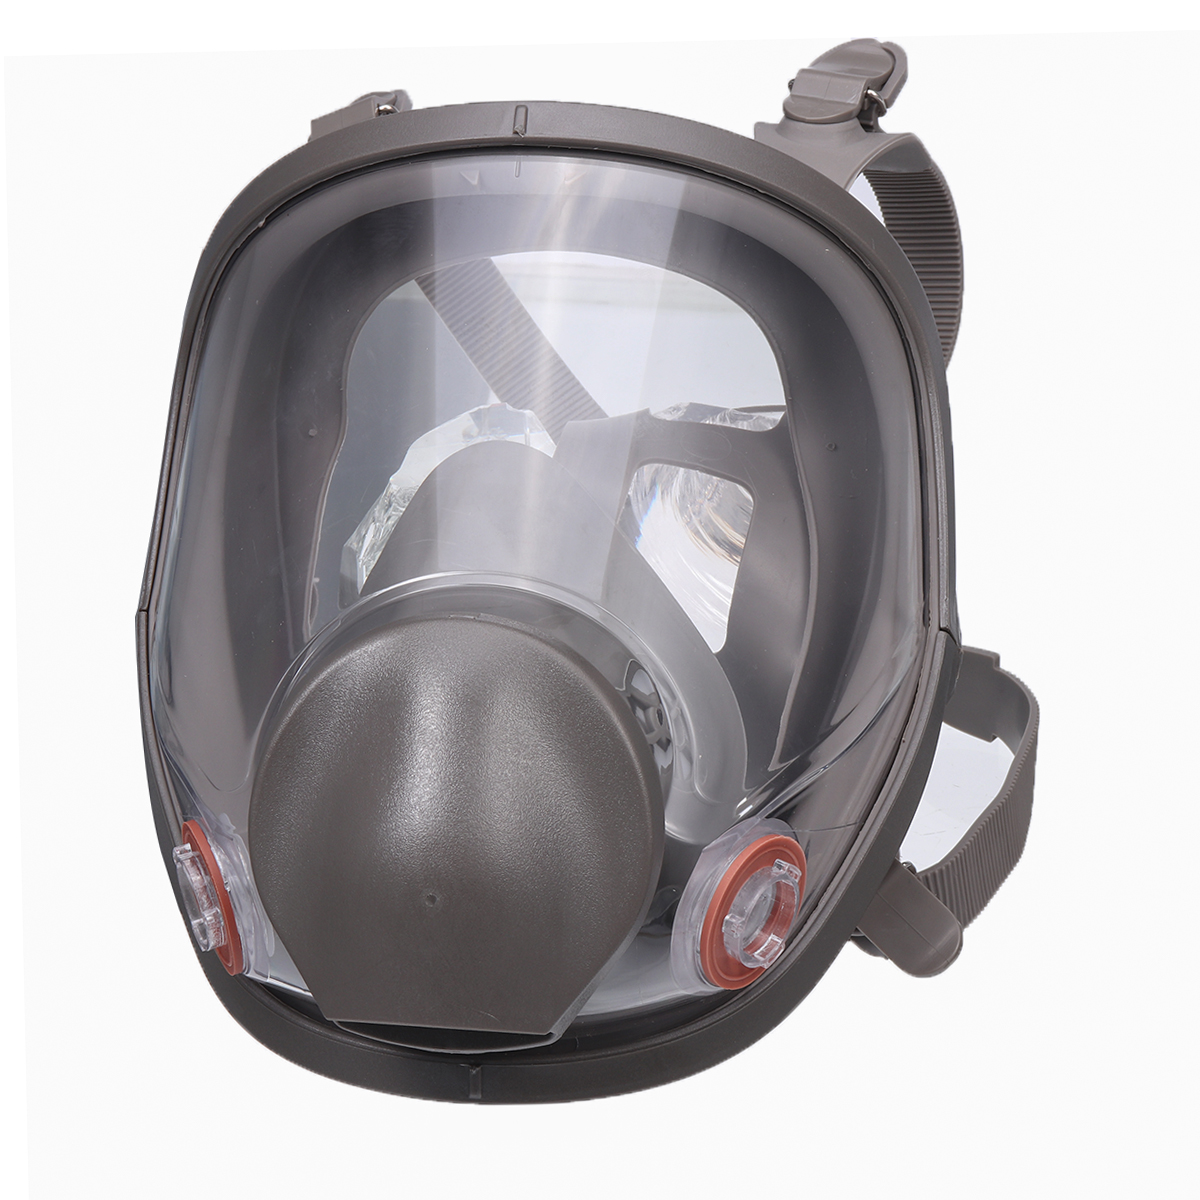 Eachine1 / Reusable 6800 Full Face Gas Mask Spraying Painting Respirator Silicone Facepiece